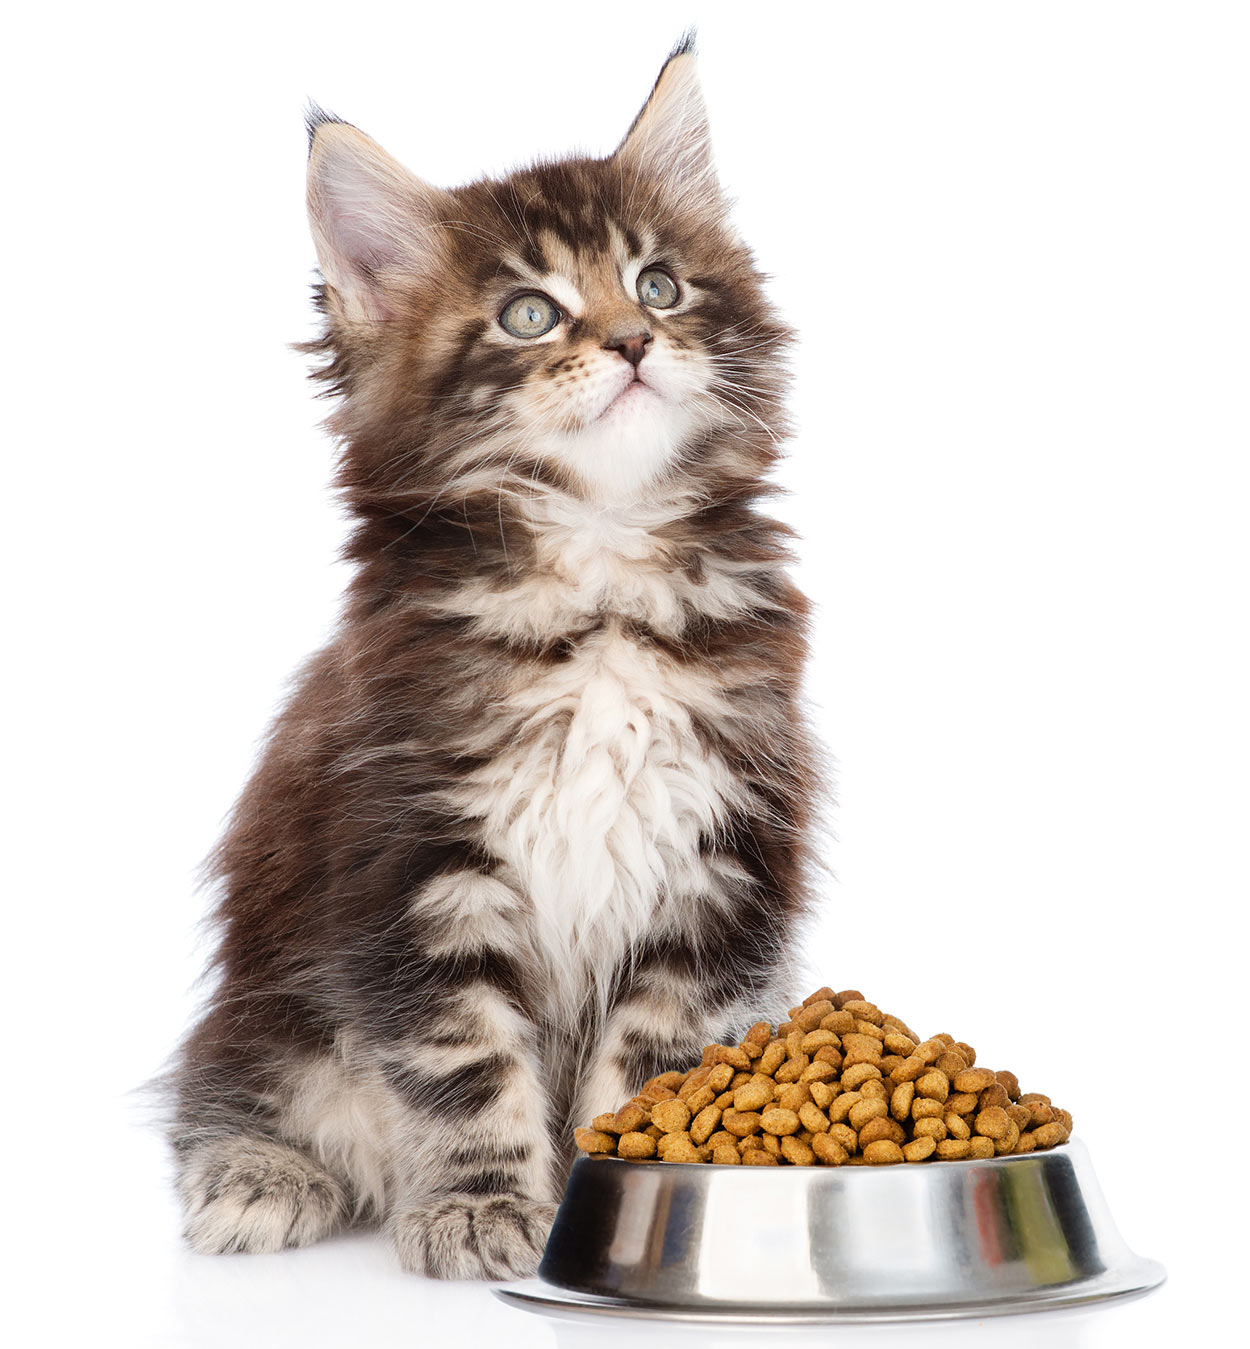 Best Food For Maine Coon